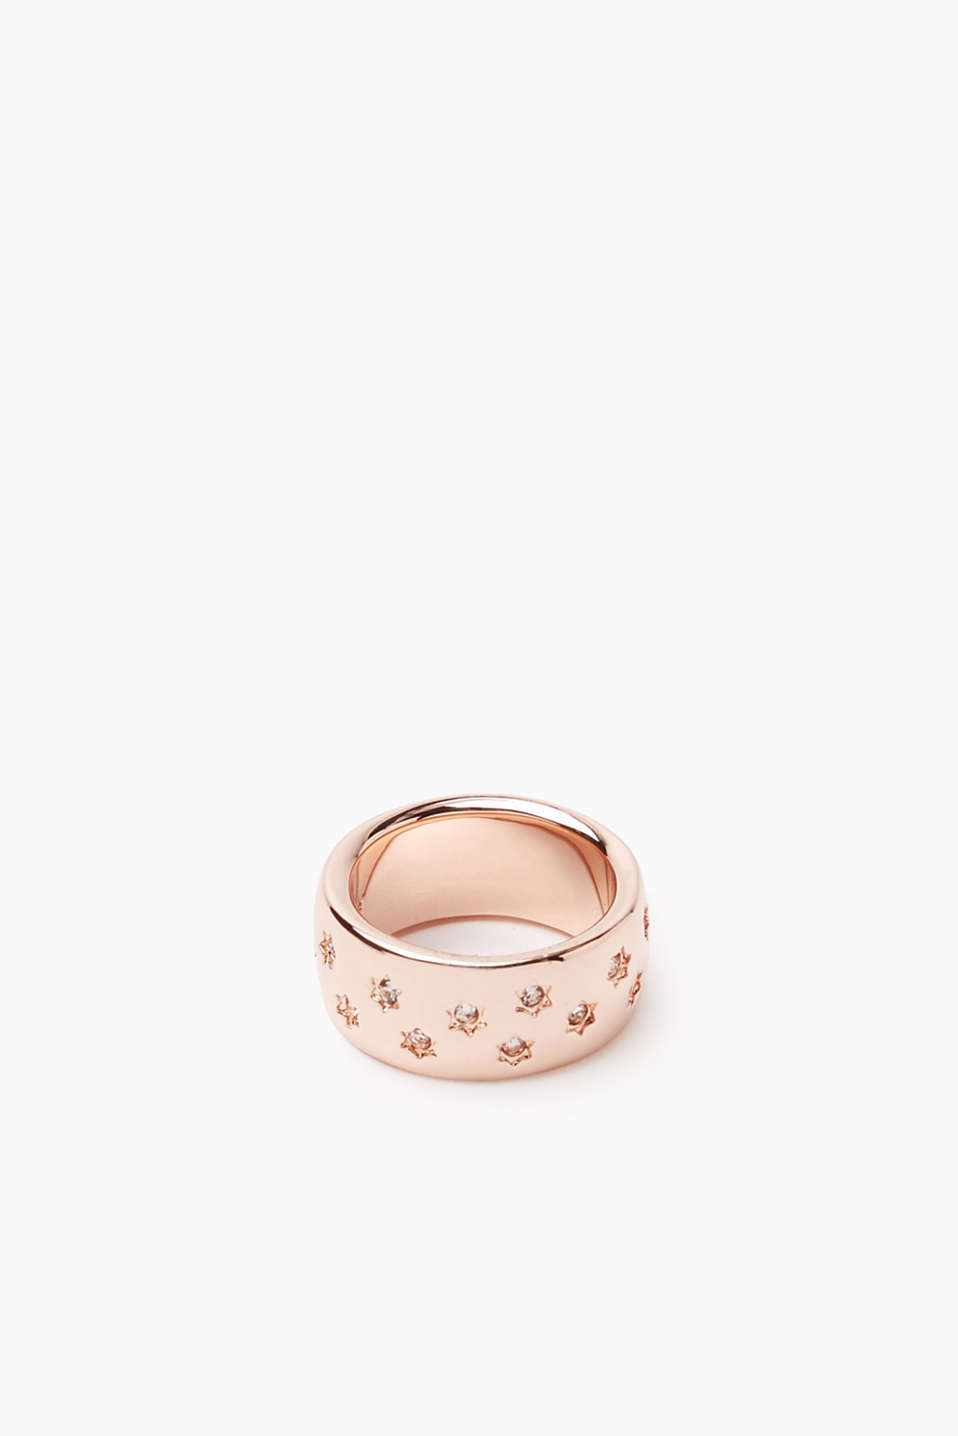 Polished metal ring with rose gold plating and sparkling stars in zirconia, width approx. 10 mm